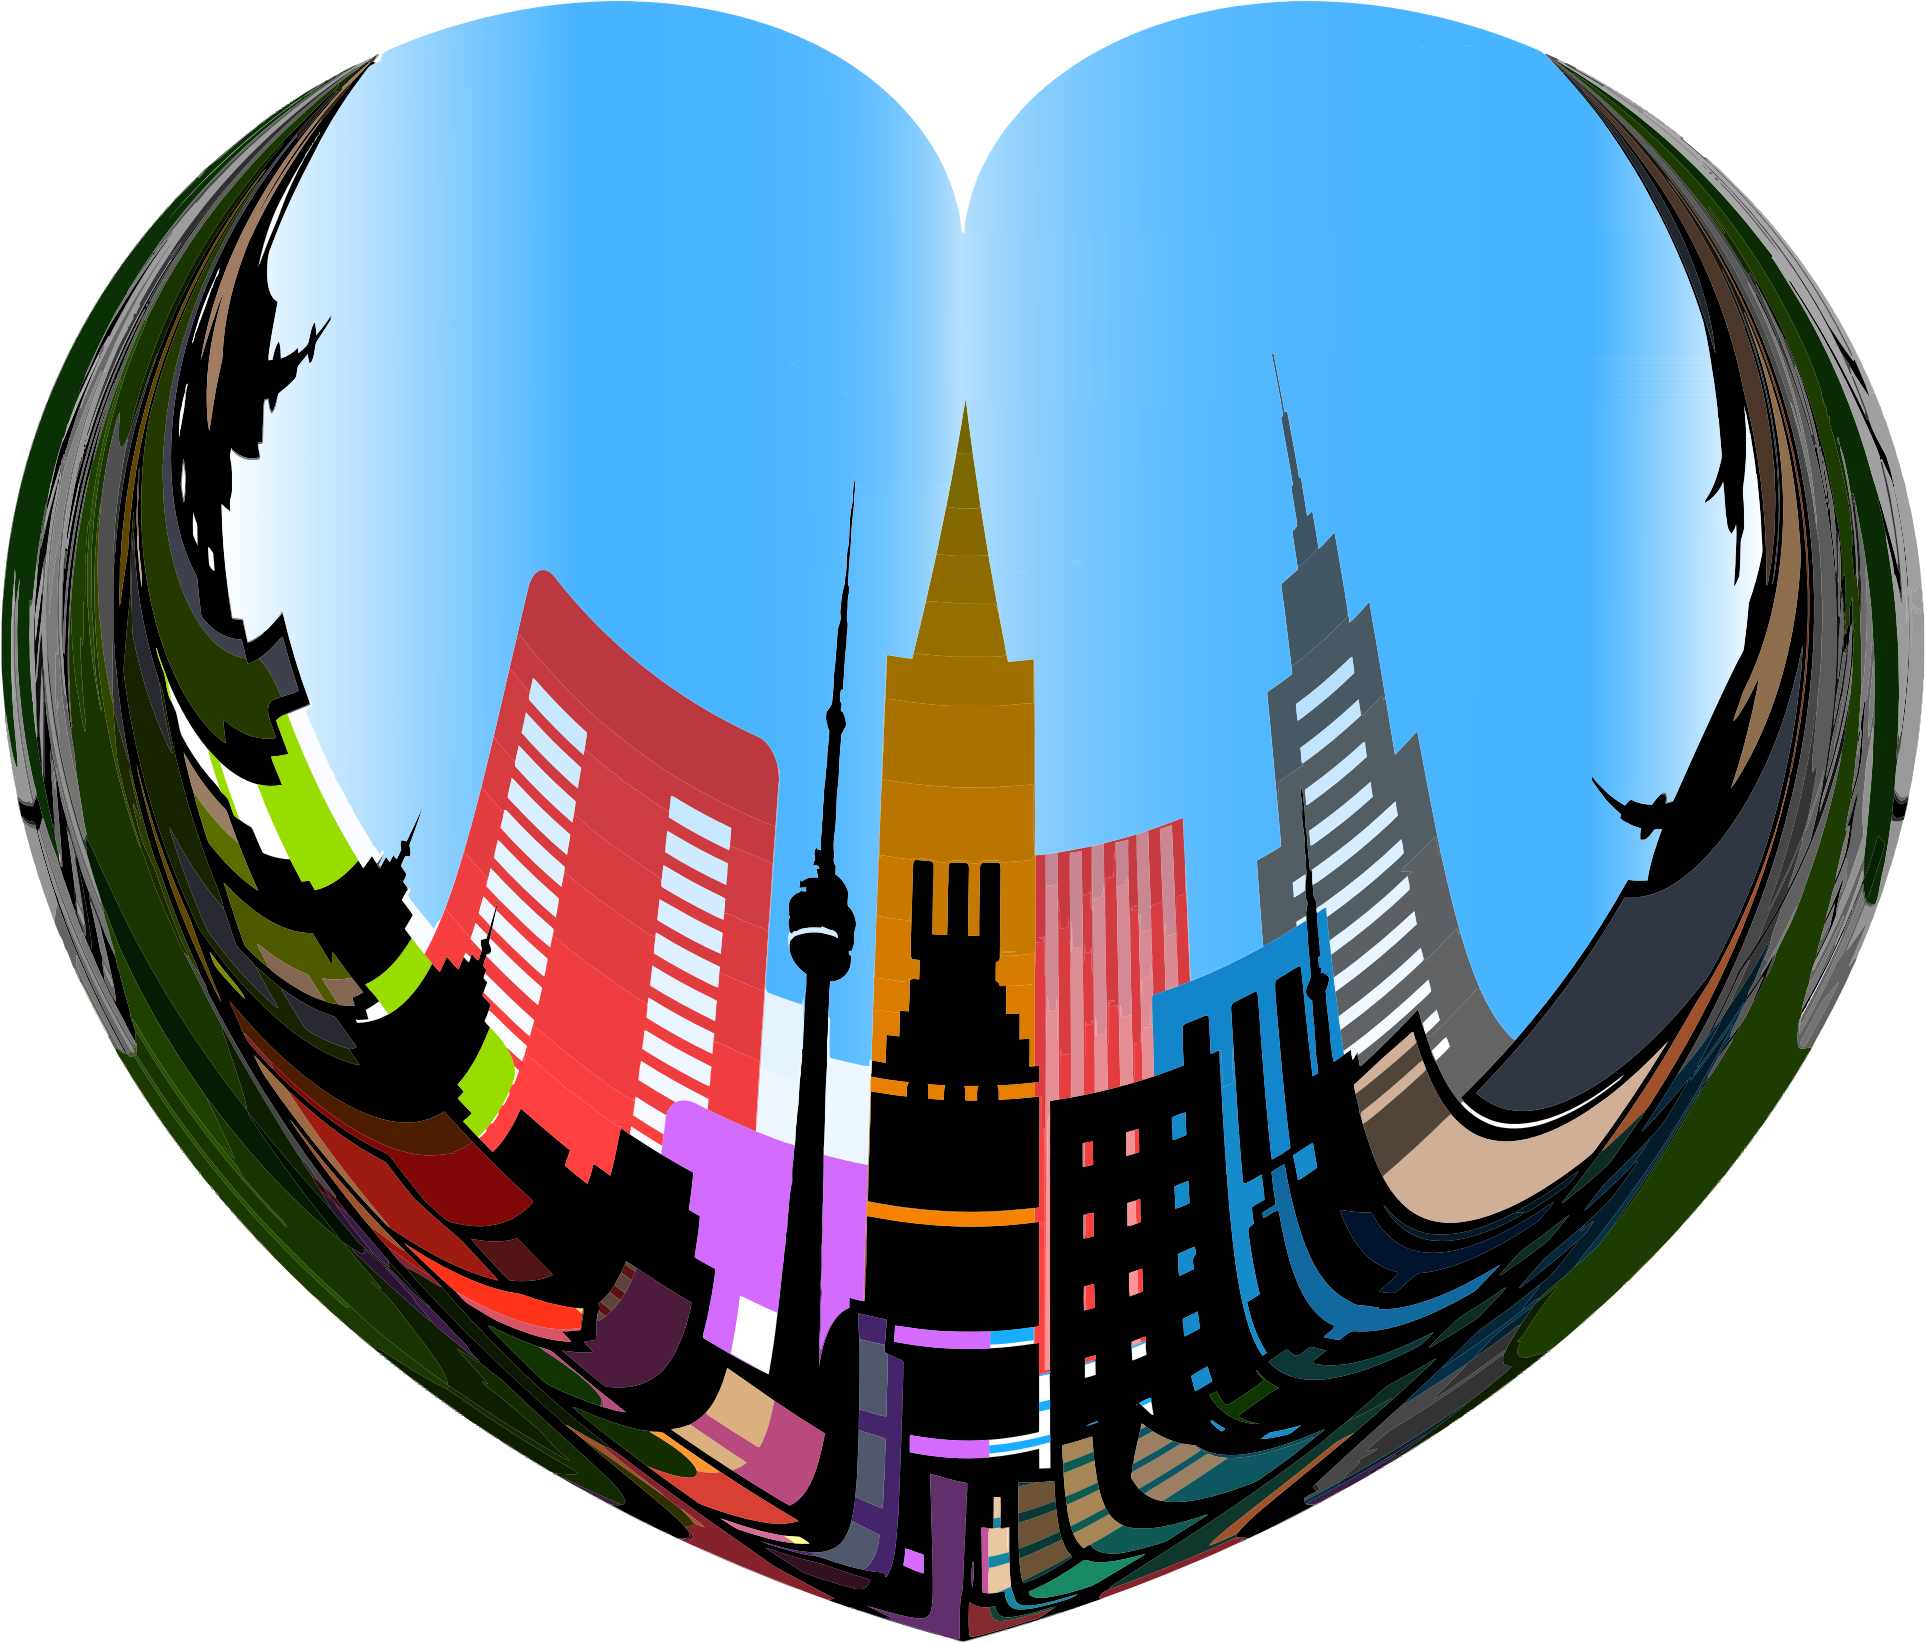 Circle clipart city. Heart of the big